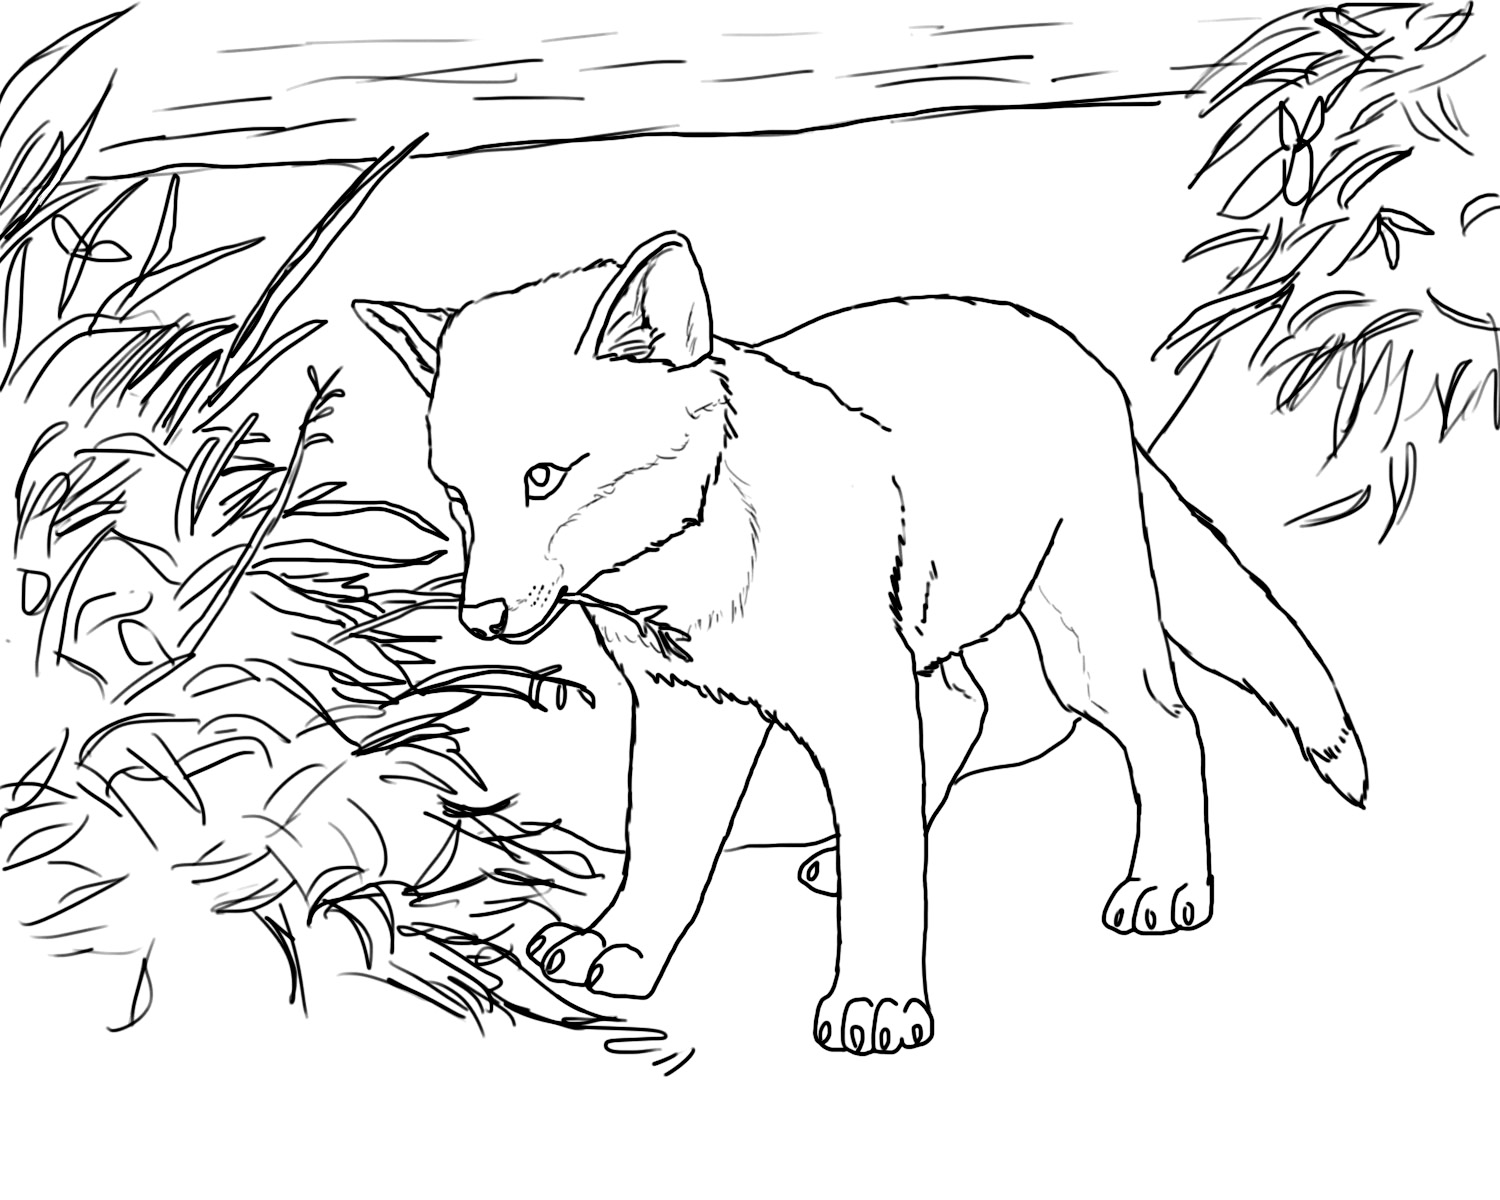 coloring baby fox cute fox coloring pages ideas for kids cute fox drawing coloring baby fox